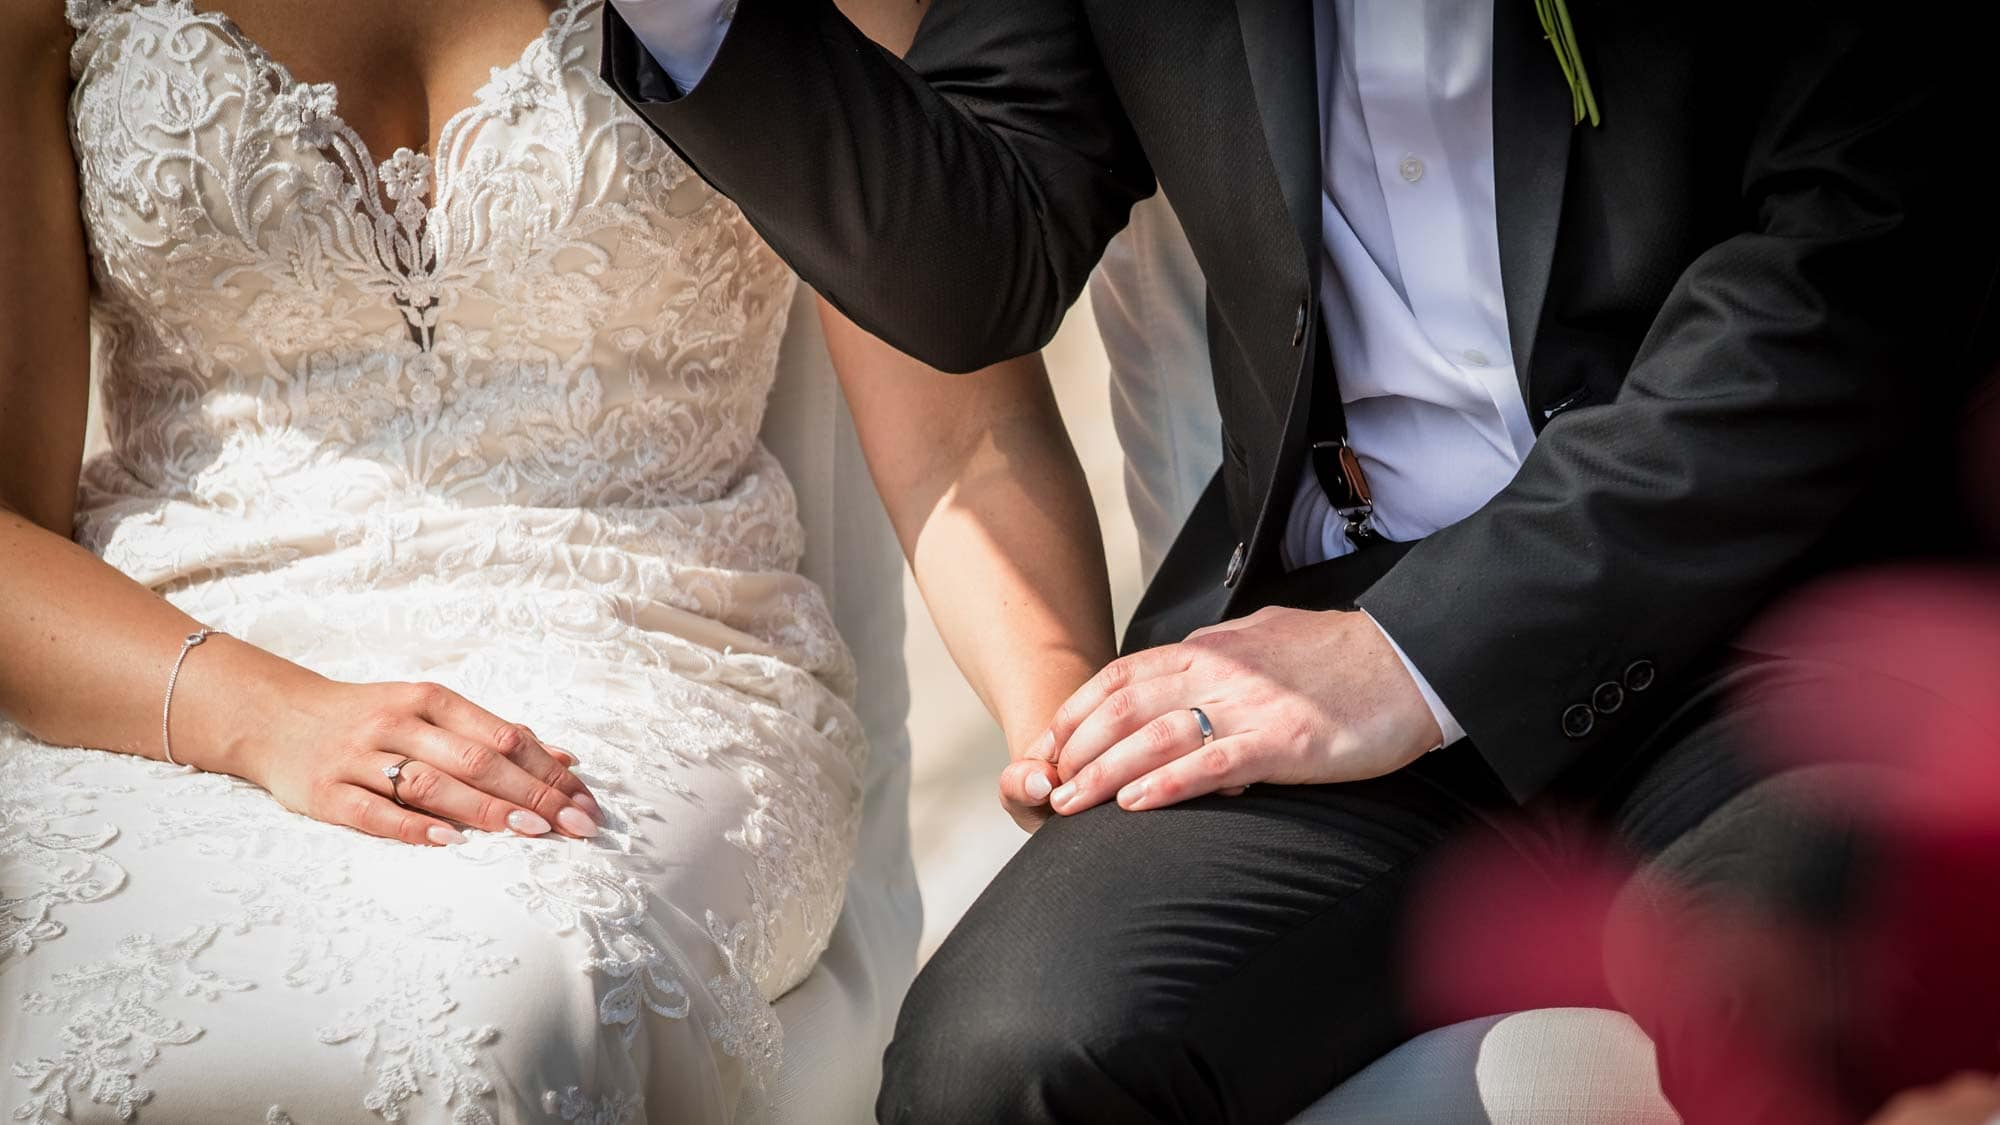 Bride and groom hold hands during their beautiful wedding ceremony